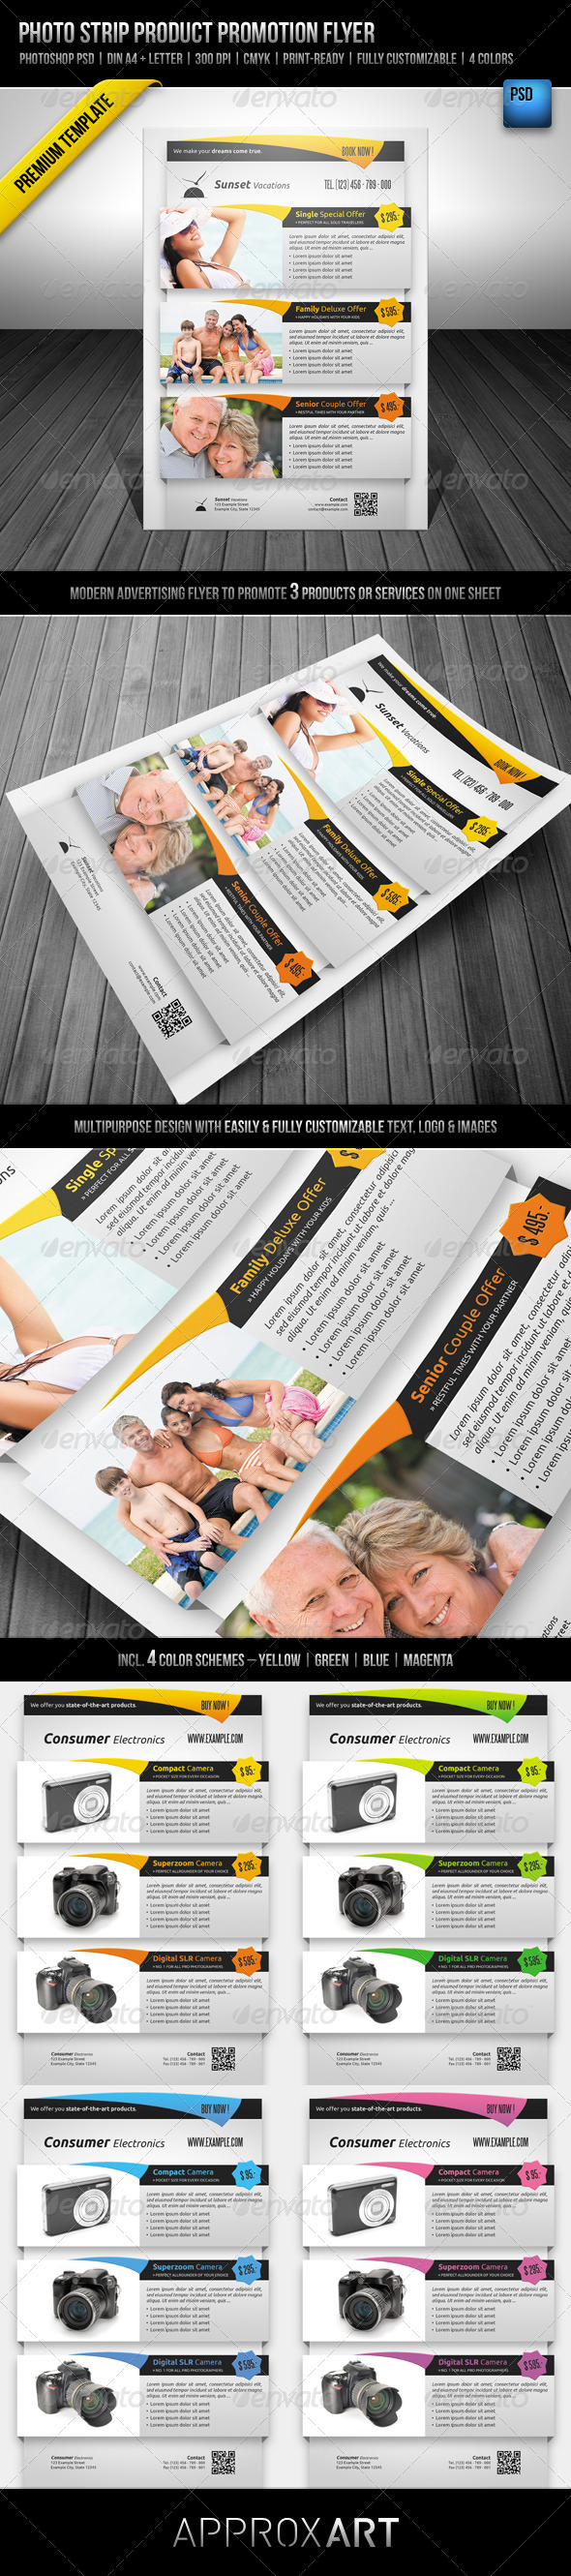 Photo Strip Product Promotion Flyer - Commerce Flyers